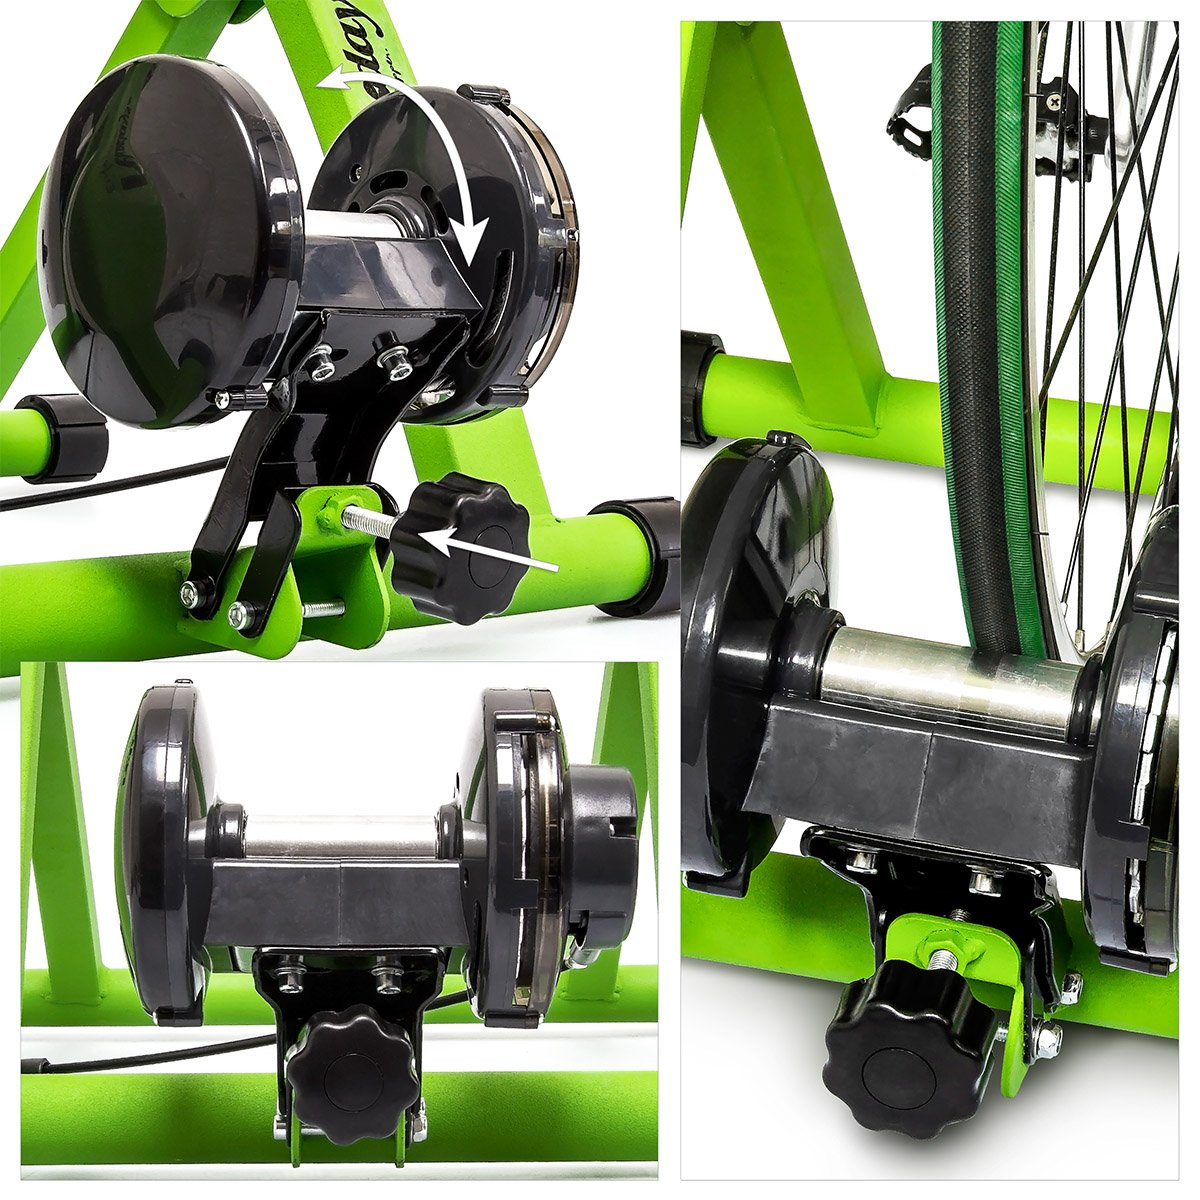 Blue//Green for 26-28 Wheels Indoor Cycling Stand 6 Gears Cardio Workout Relaxdays Indoor Bicycle Resistance Trainer